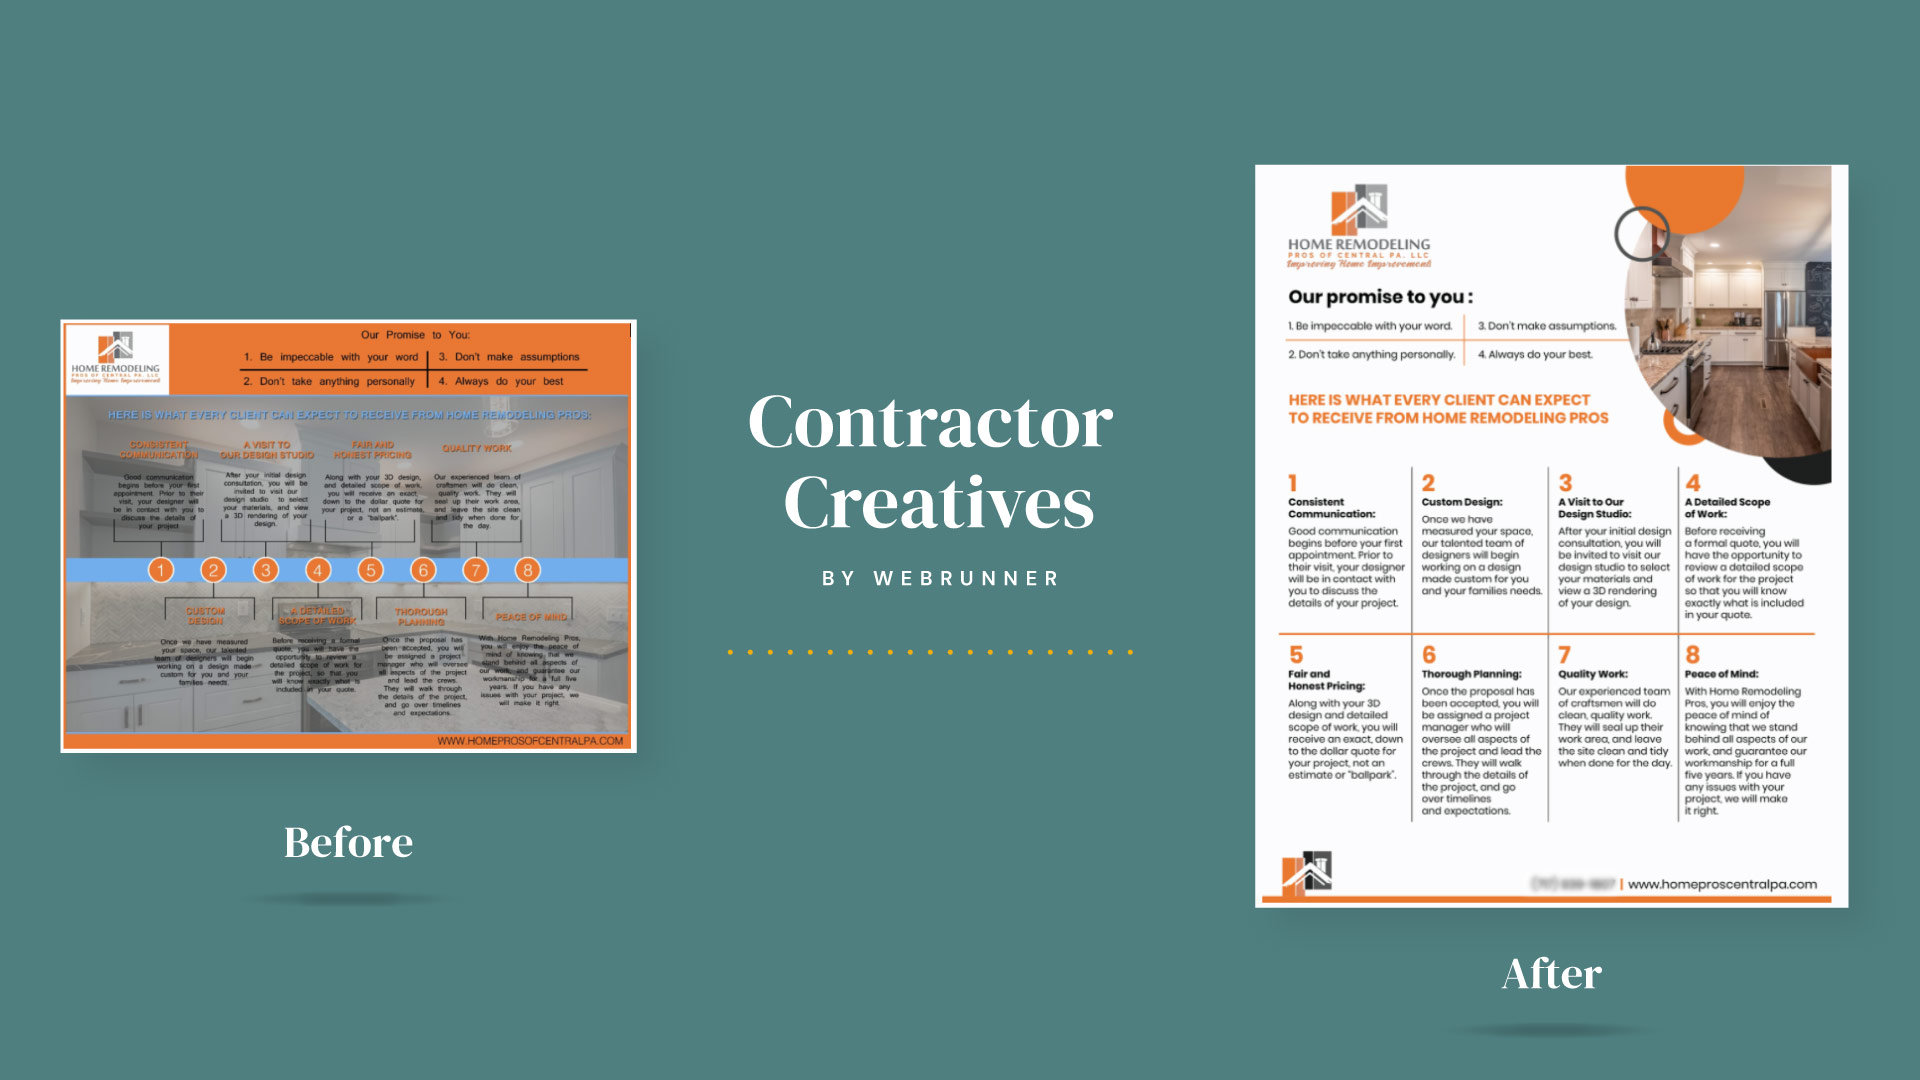 Next step: Contractor Creatives